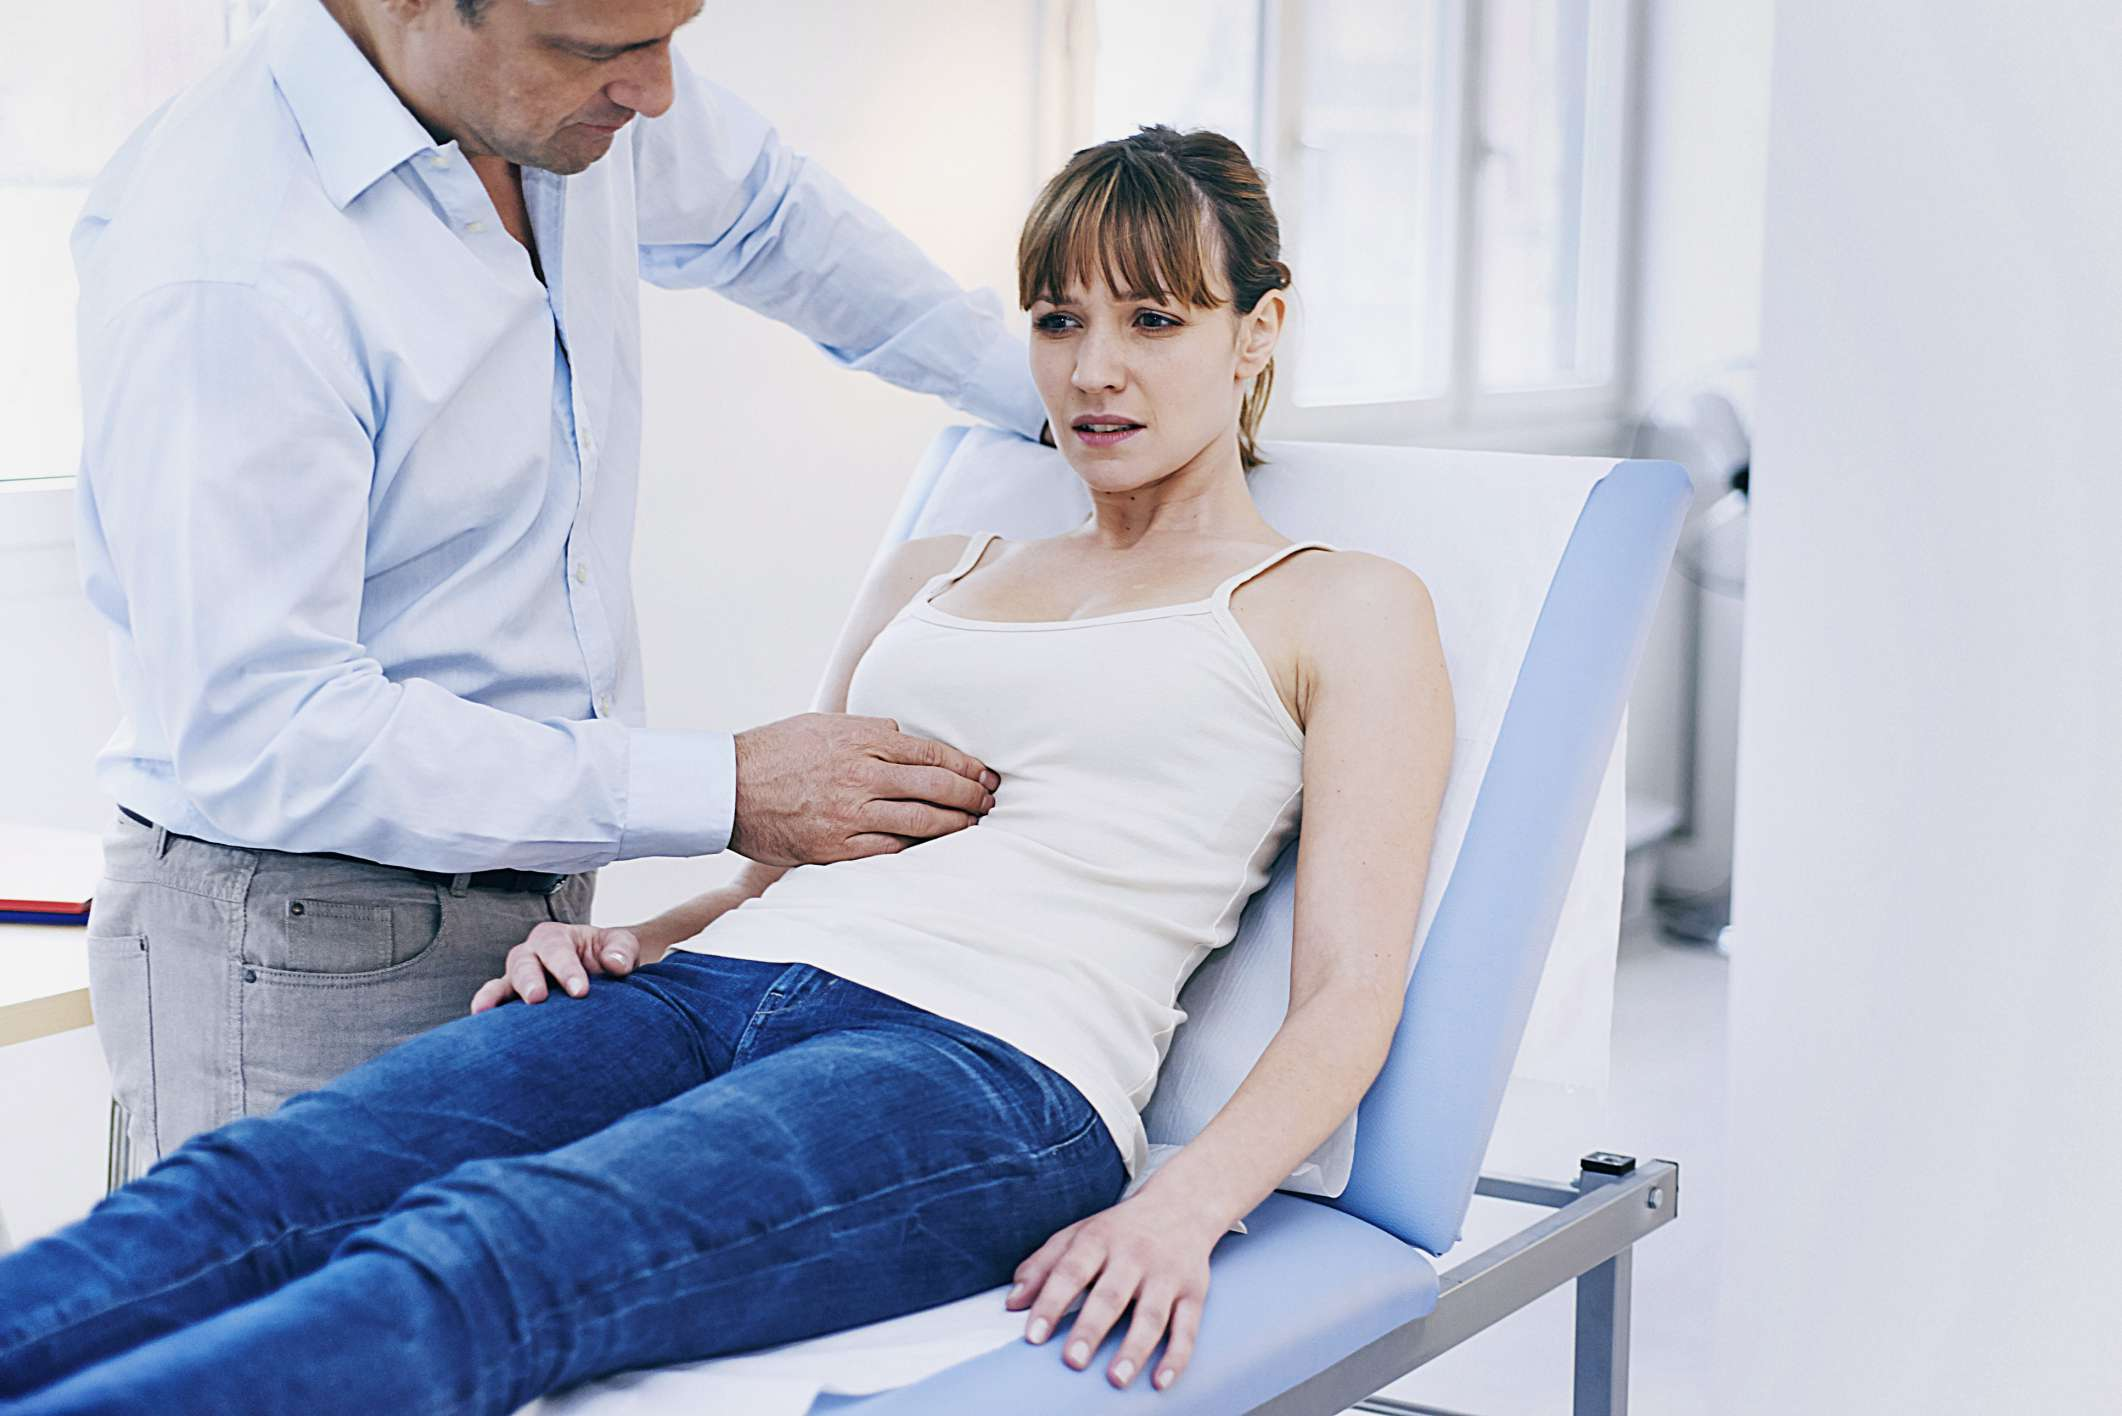 A woman getting her abdomen check by her doctor